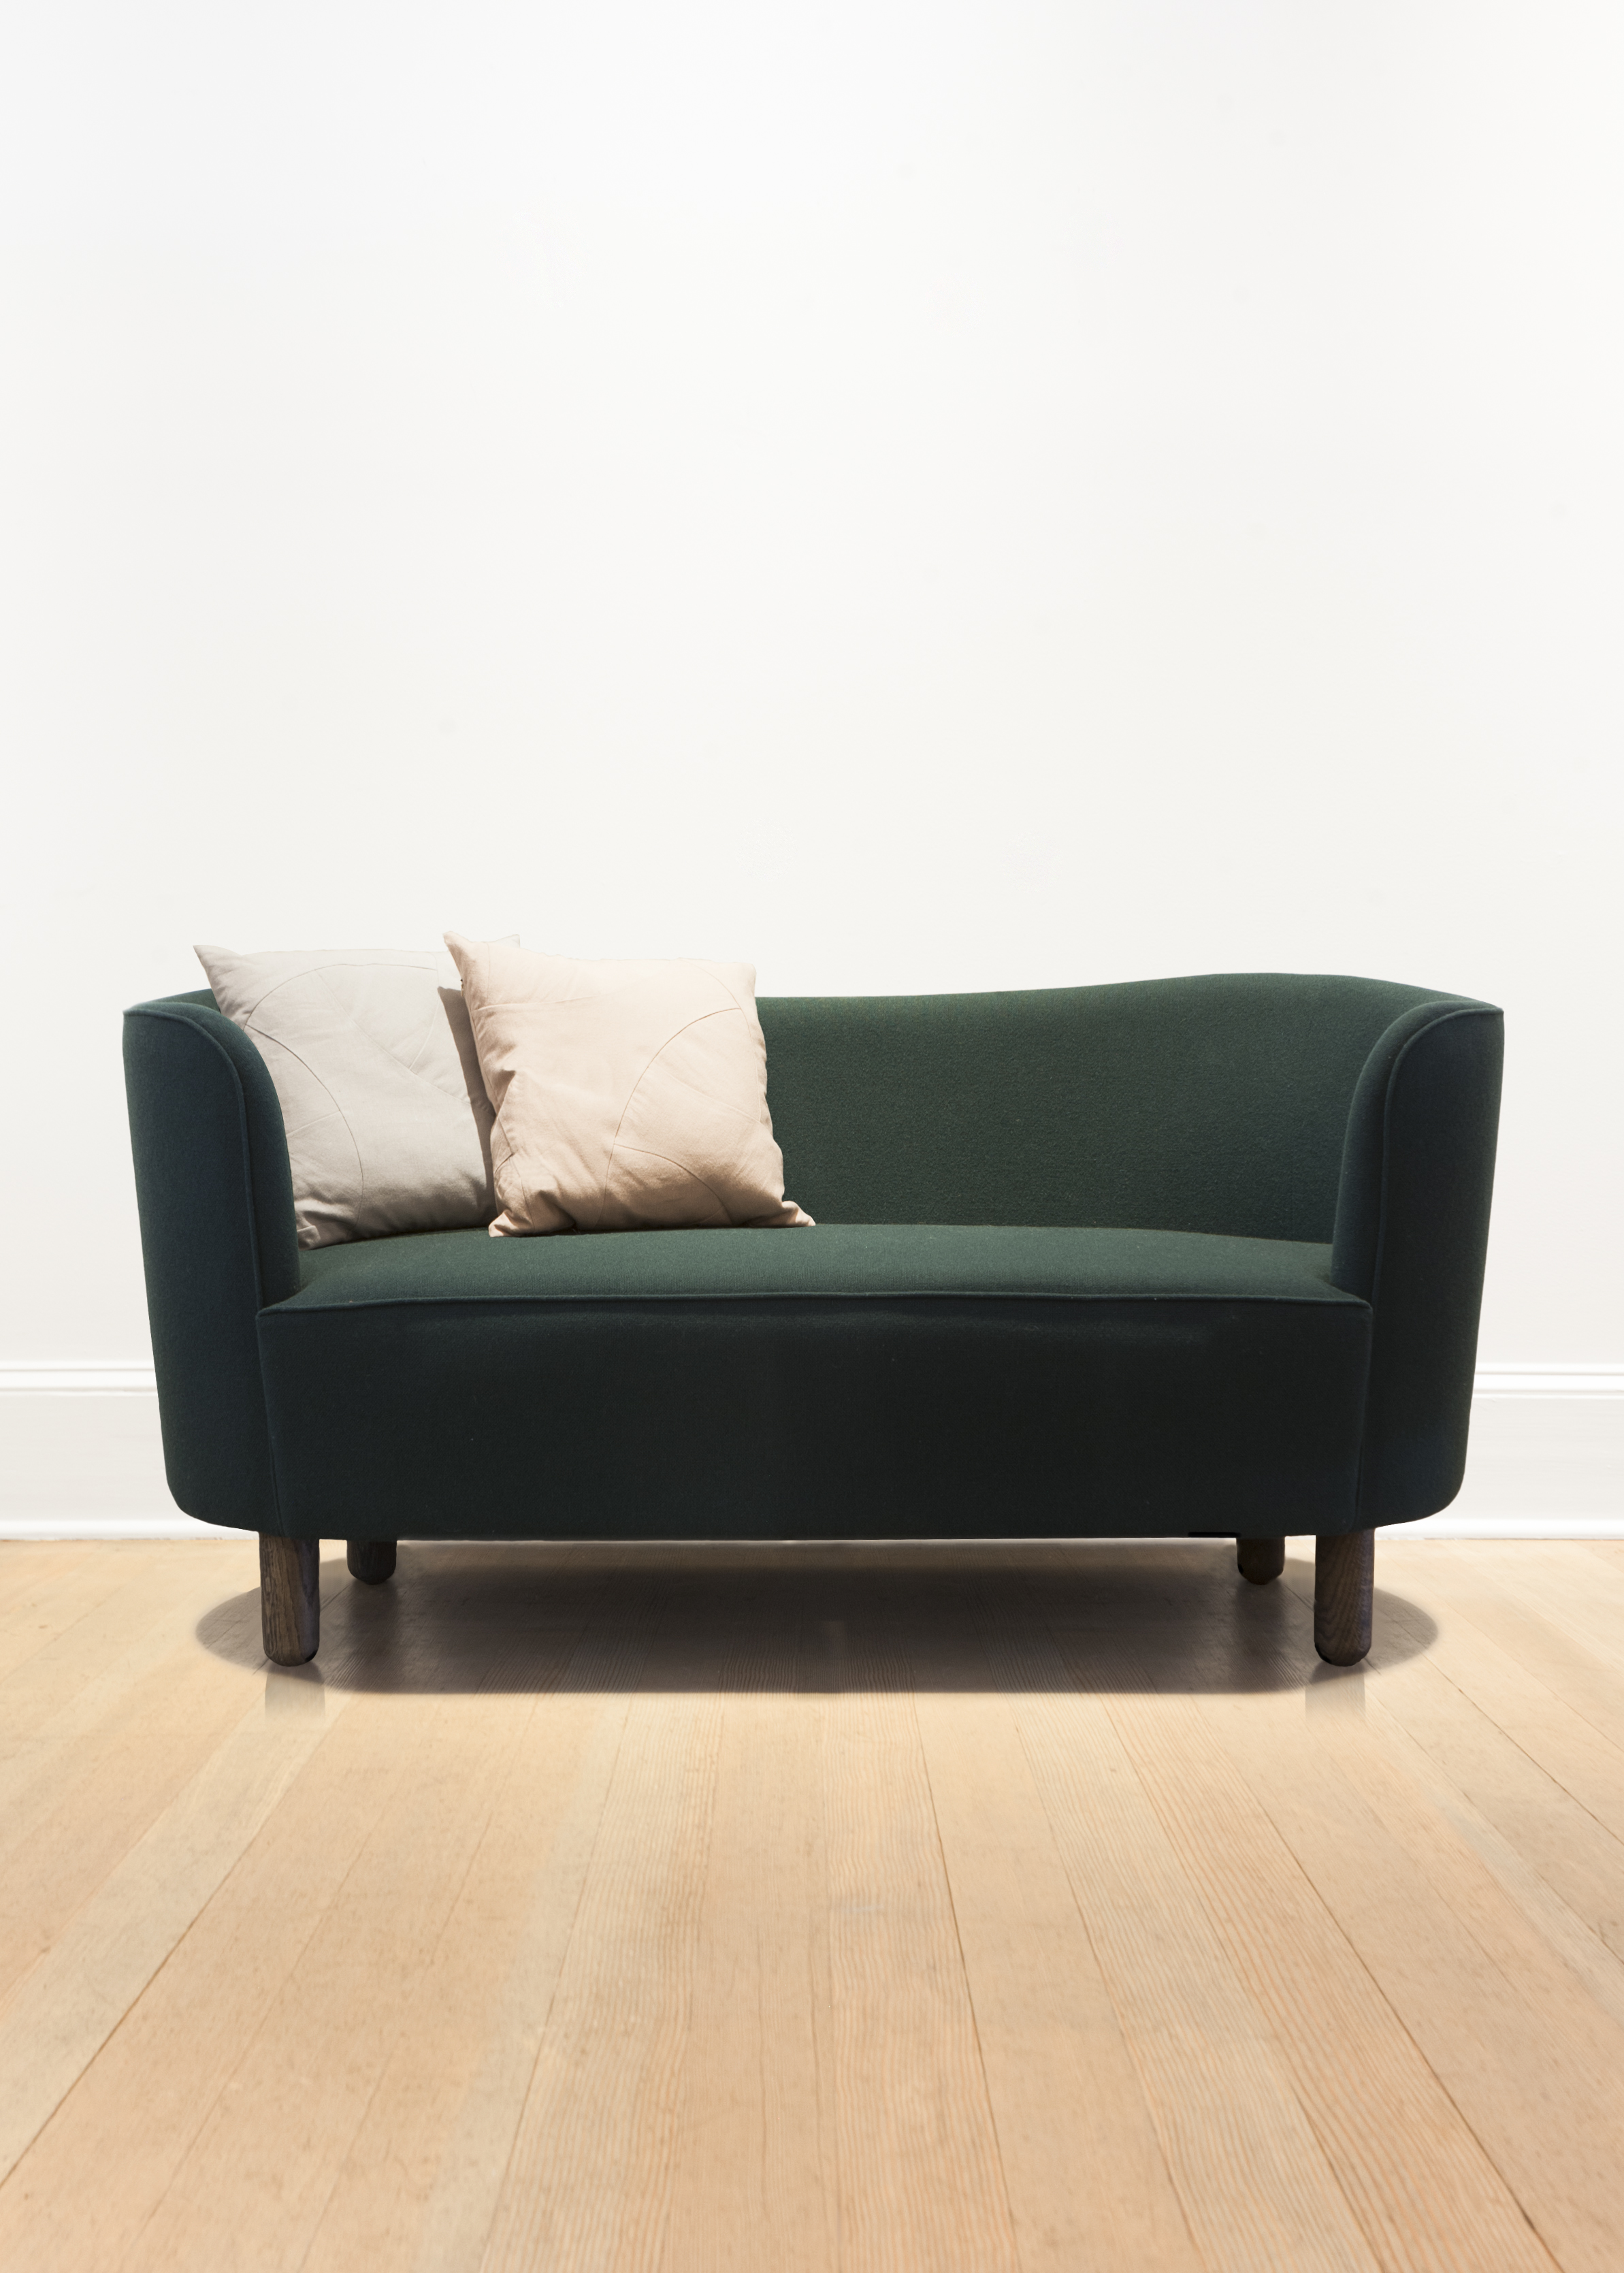 couch final.jpg